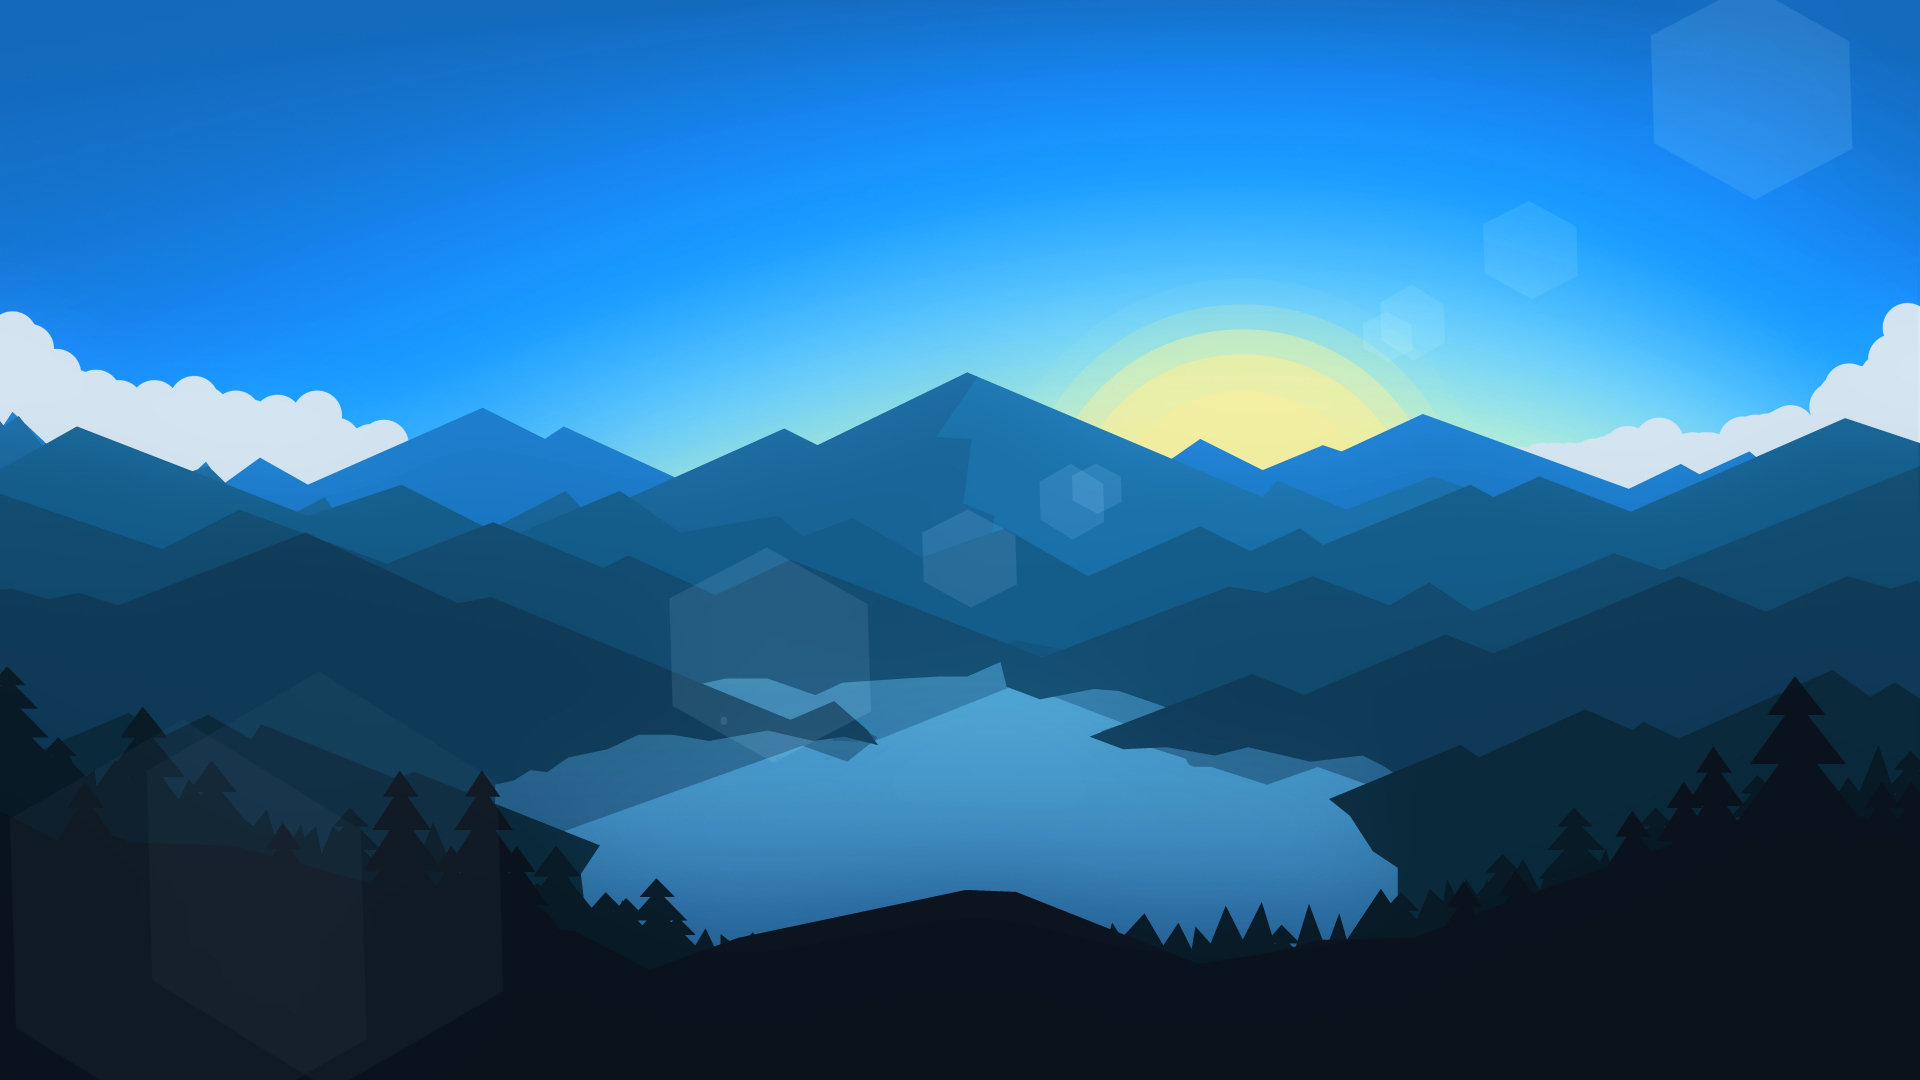 Download 1920x1080 Wallpaper Forest Mountains Sunset